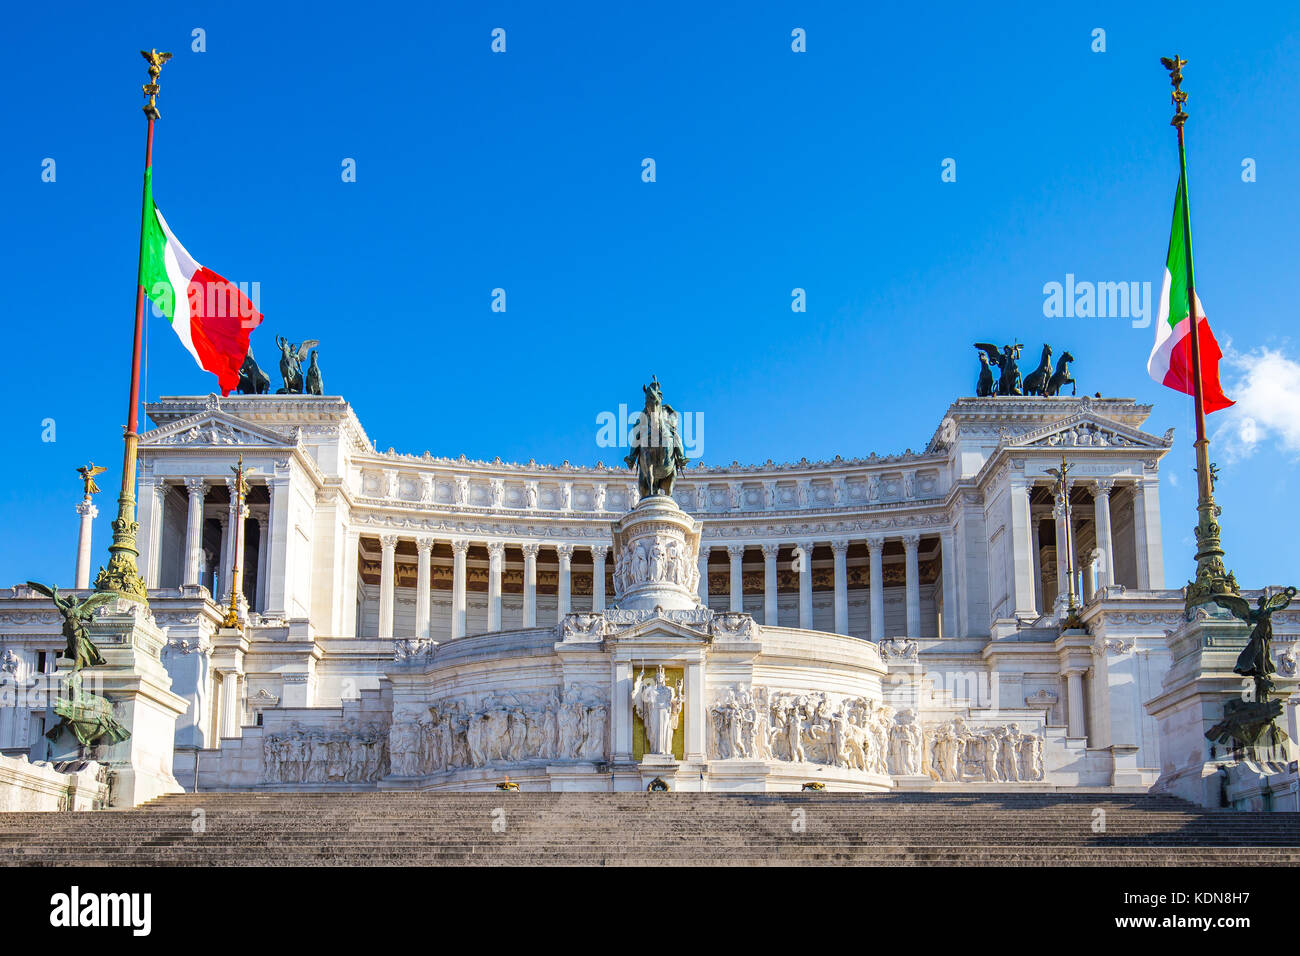 The Altar of the Fatherland landmark in Rome, Italy. - Stock Image